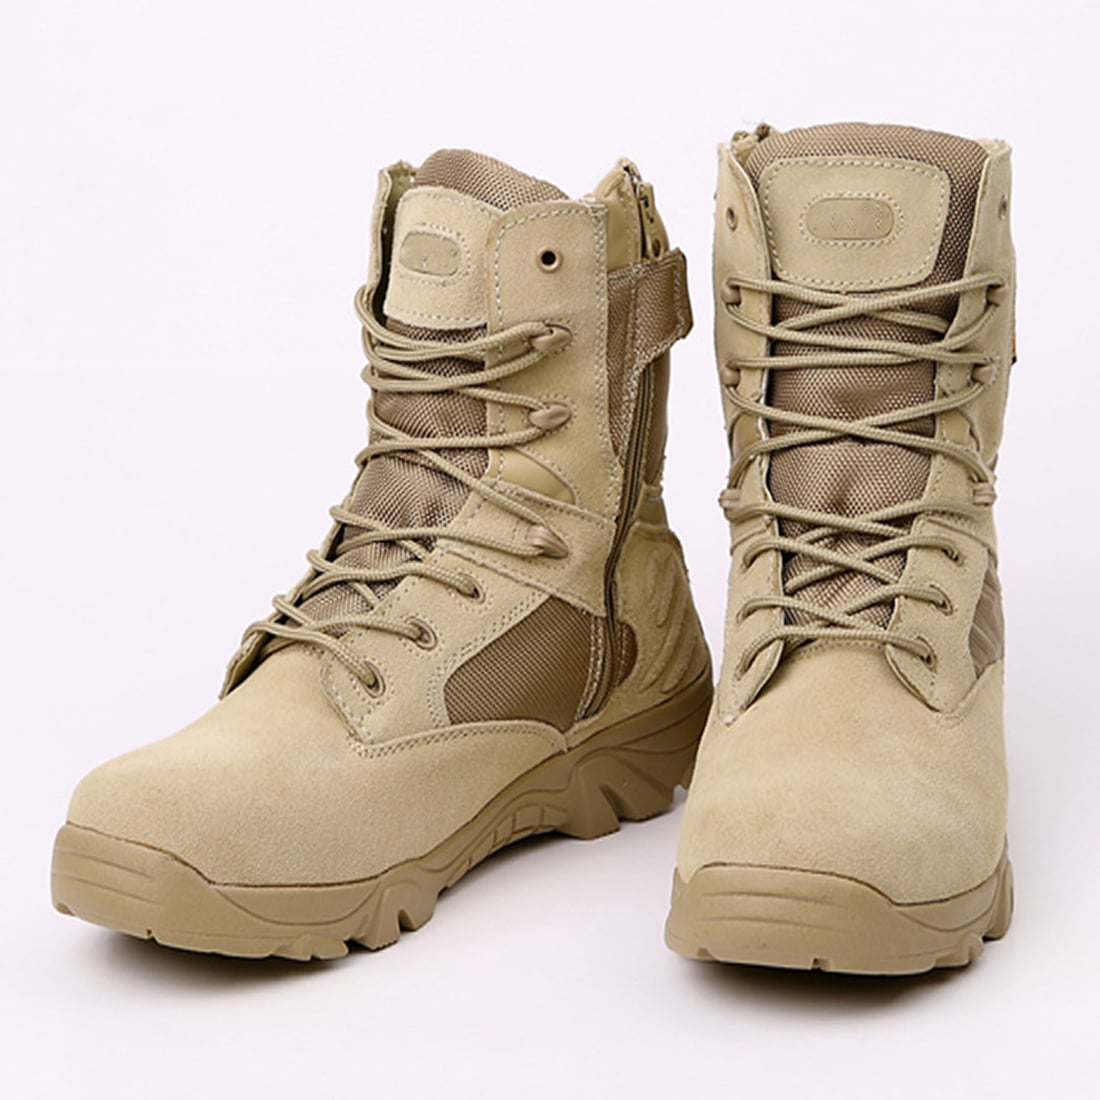 Army Desert Hiking Boots Desert Tactical Military Boots